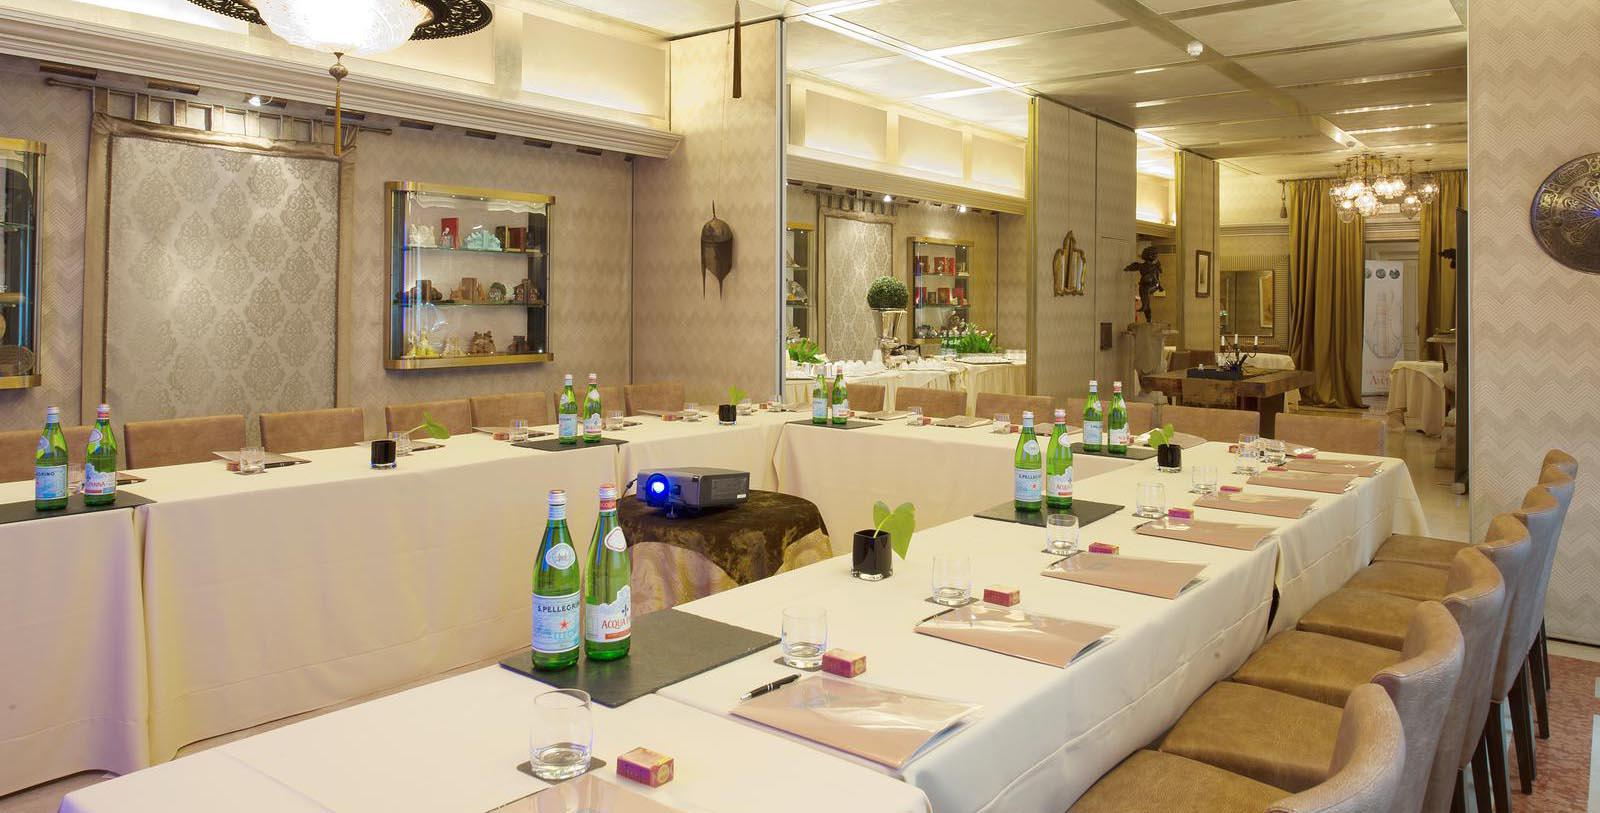 Image of Event Space Metropole Hotel, 1500, Member of Historic Hotels Worldwide, in Venice, Italy, Experience